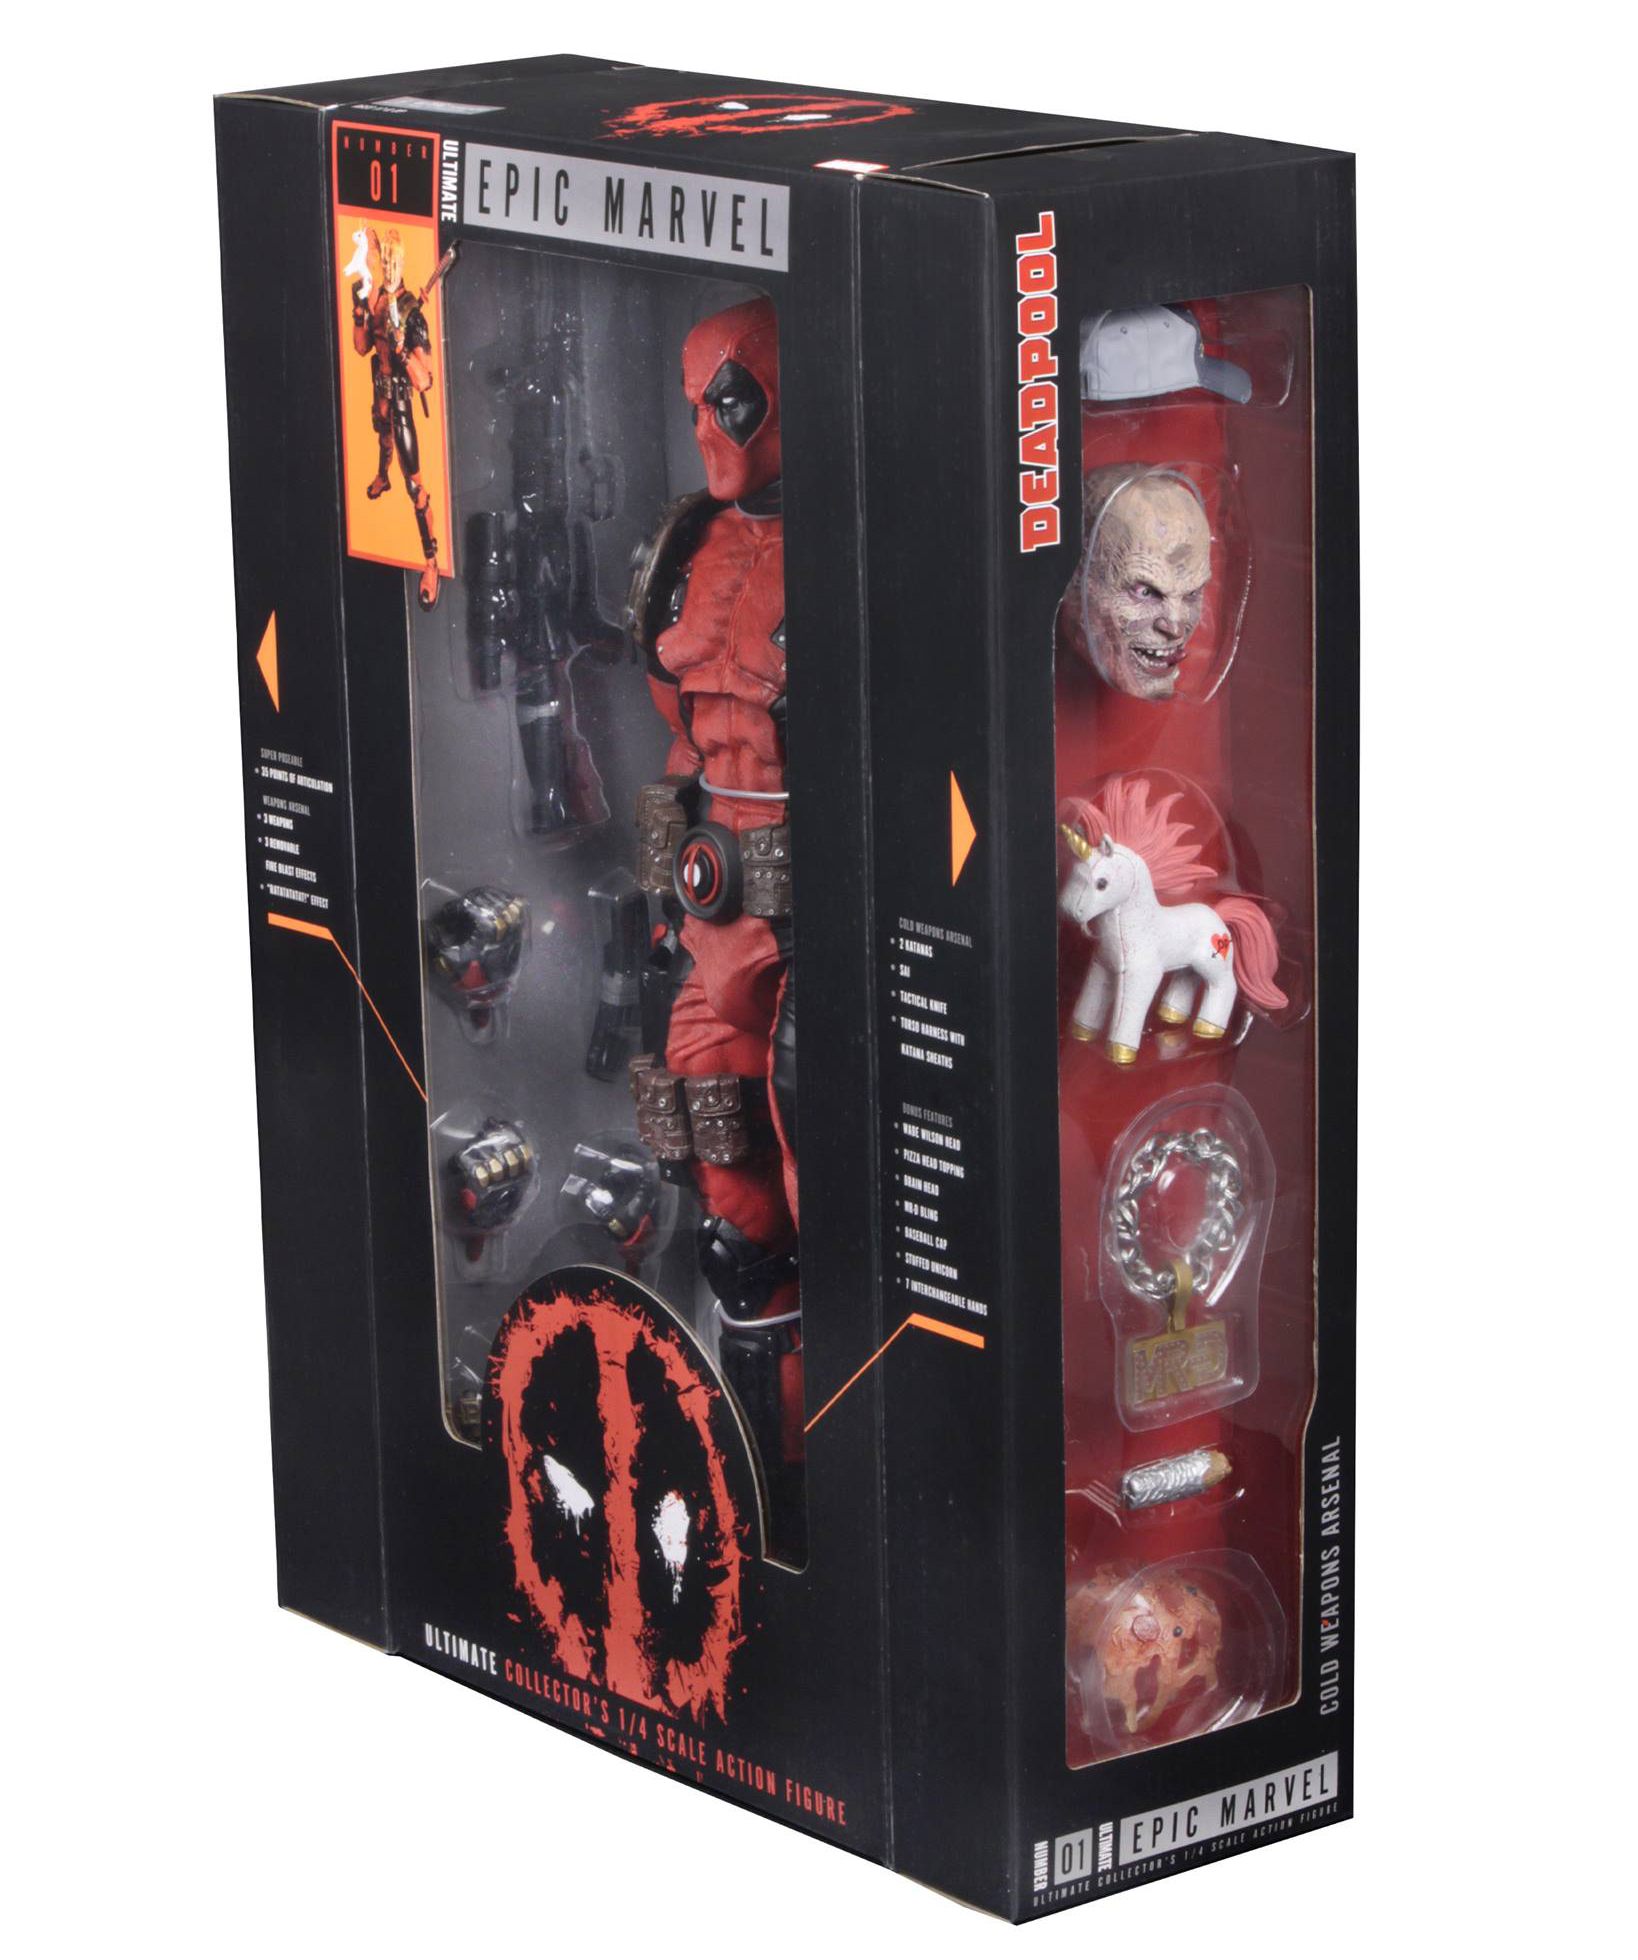 Ultimate-Deadpool-Neca-packaging-5